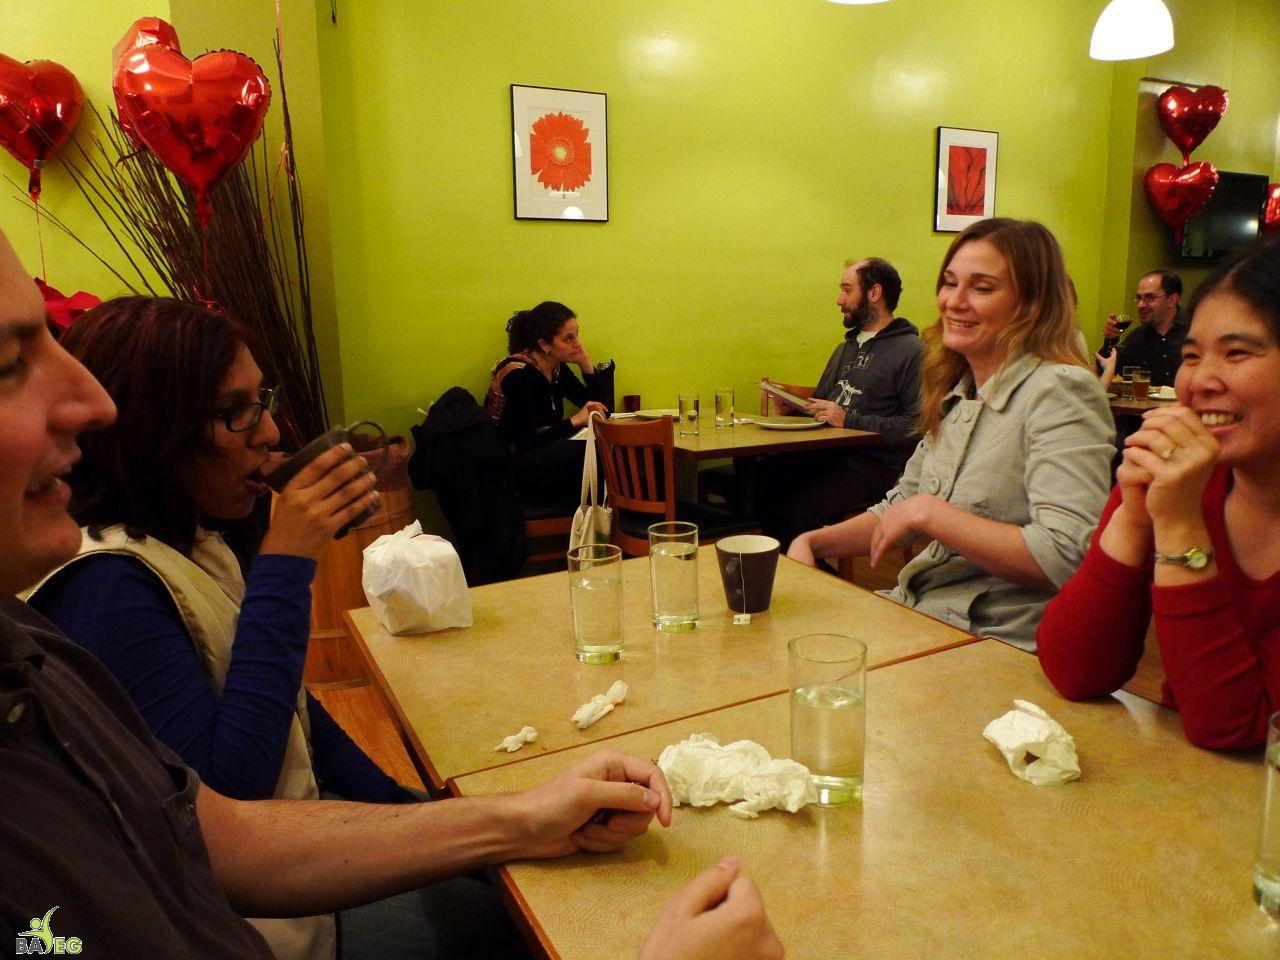 Even after all the food was gone, the conversation continued at Green Papaya